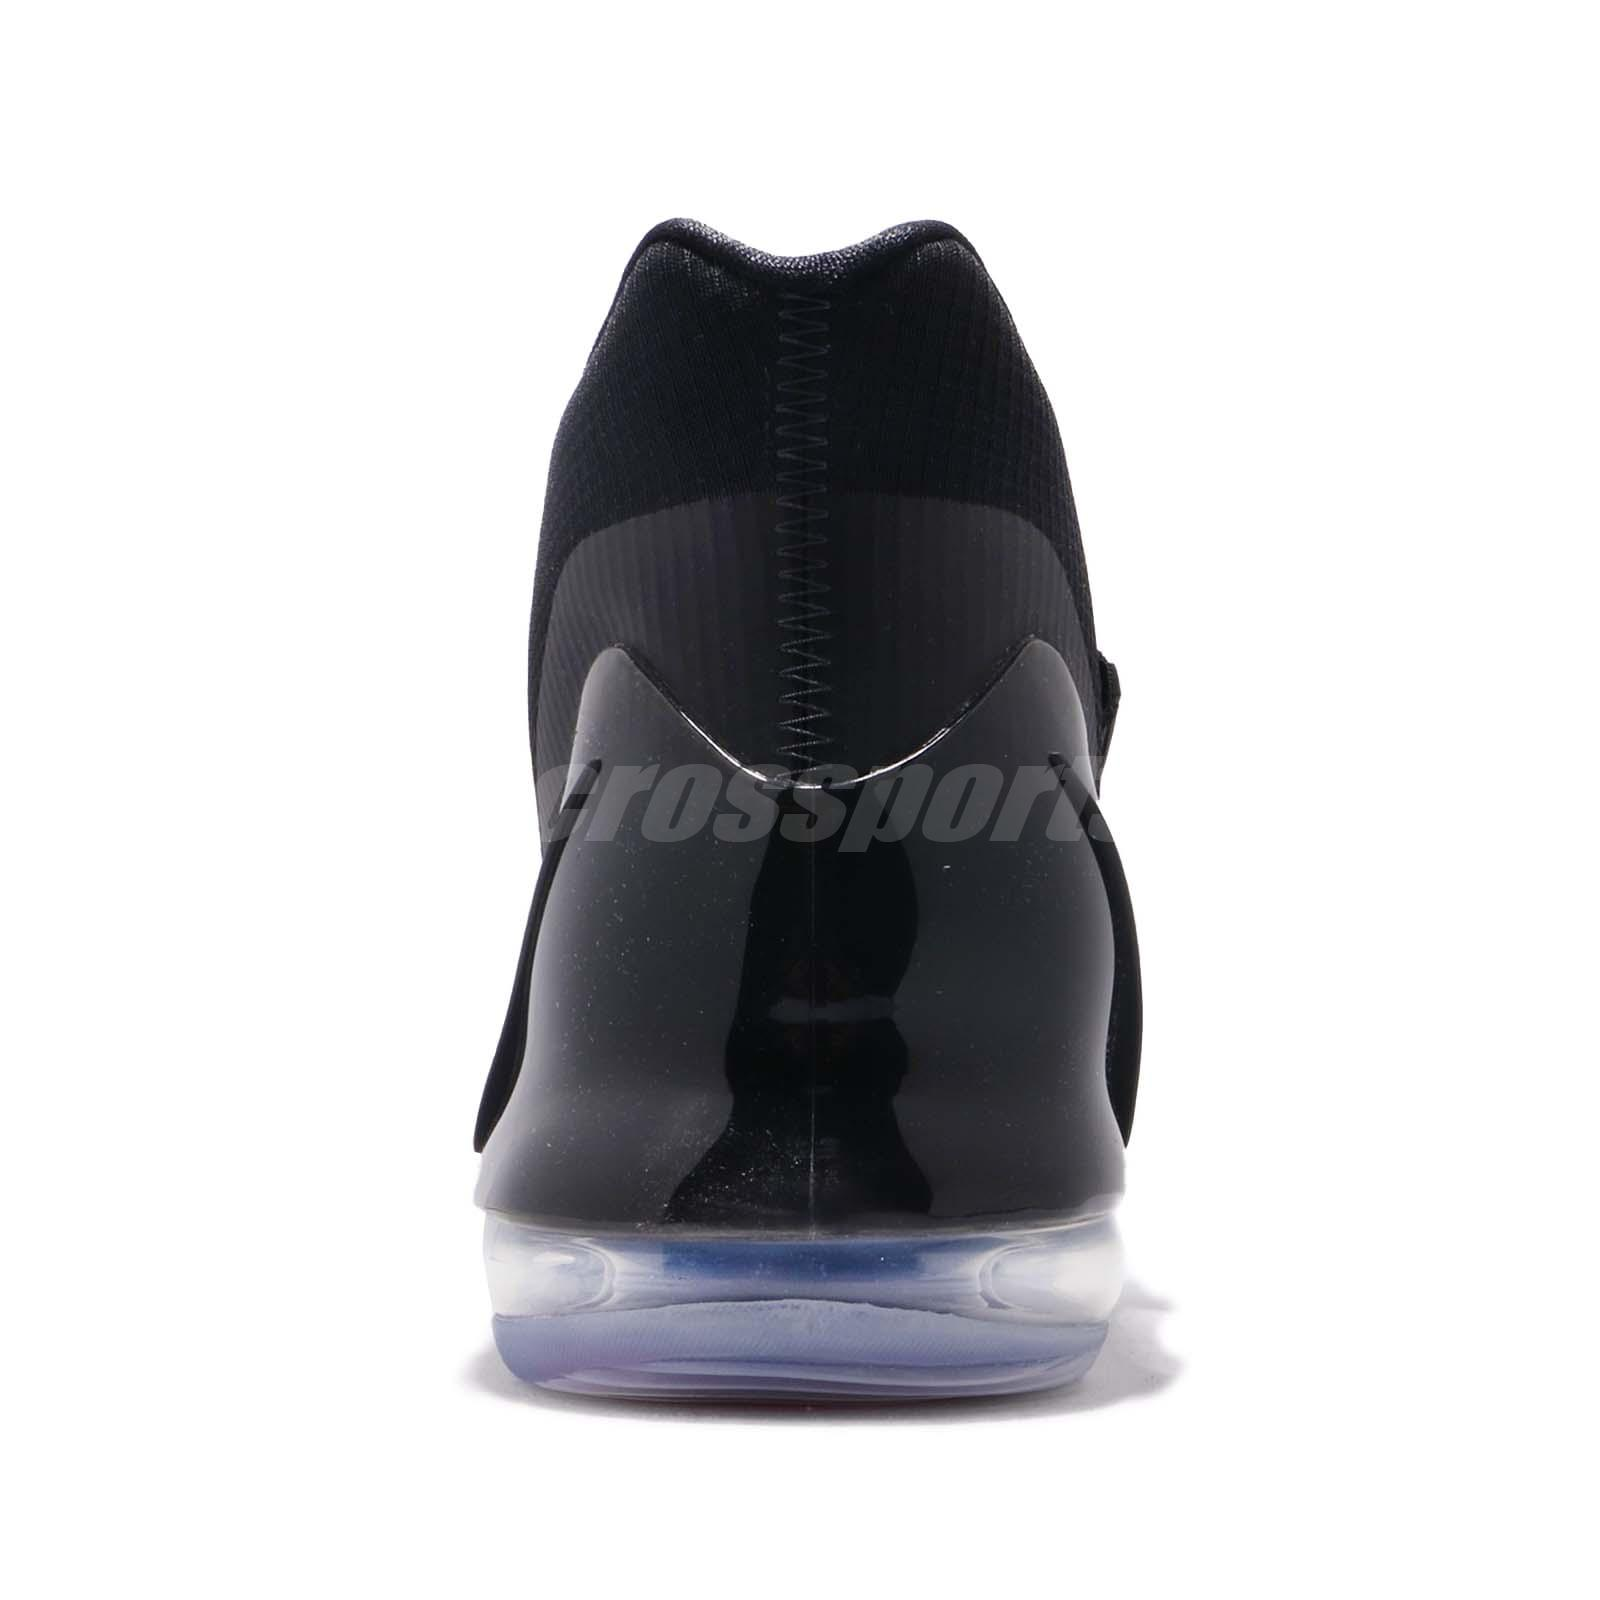 Men's Shoes Fashion Style Nike Air Force Max Ep Black Anthracite Men Basketball Shoes Sneakers Ar0975-003